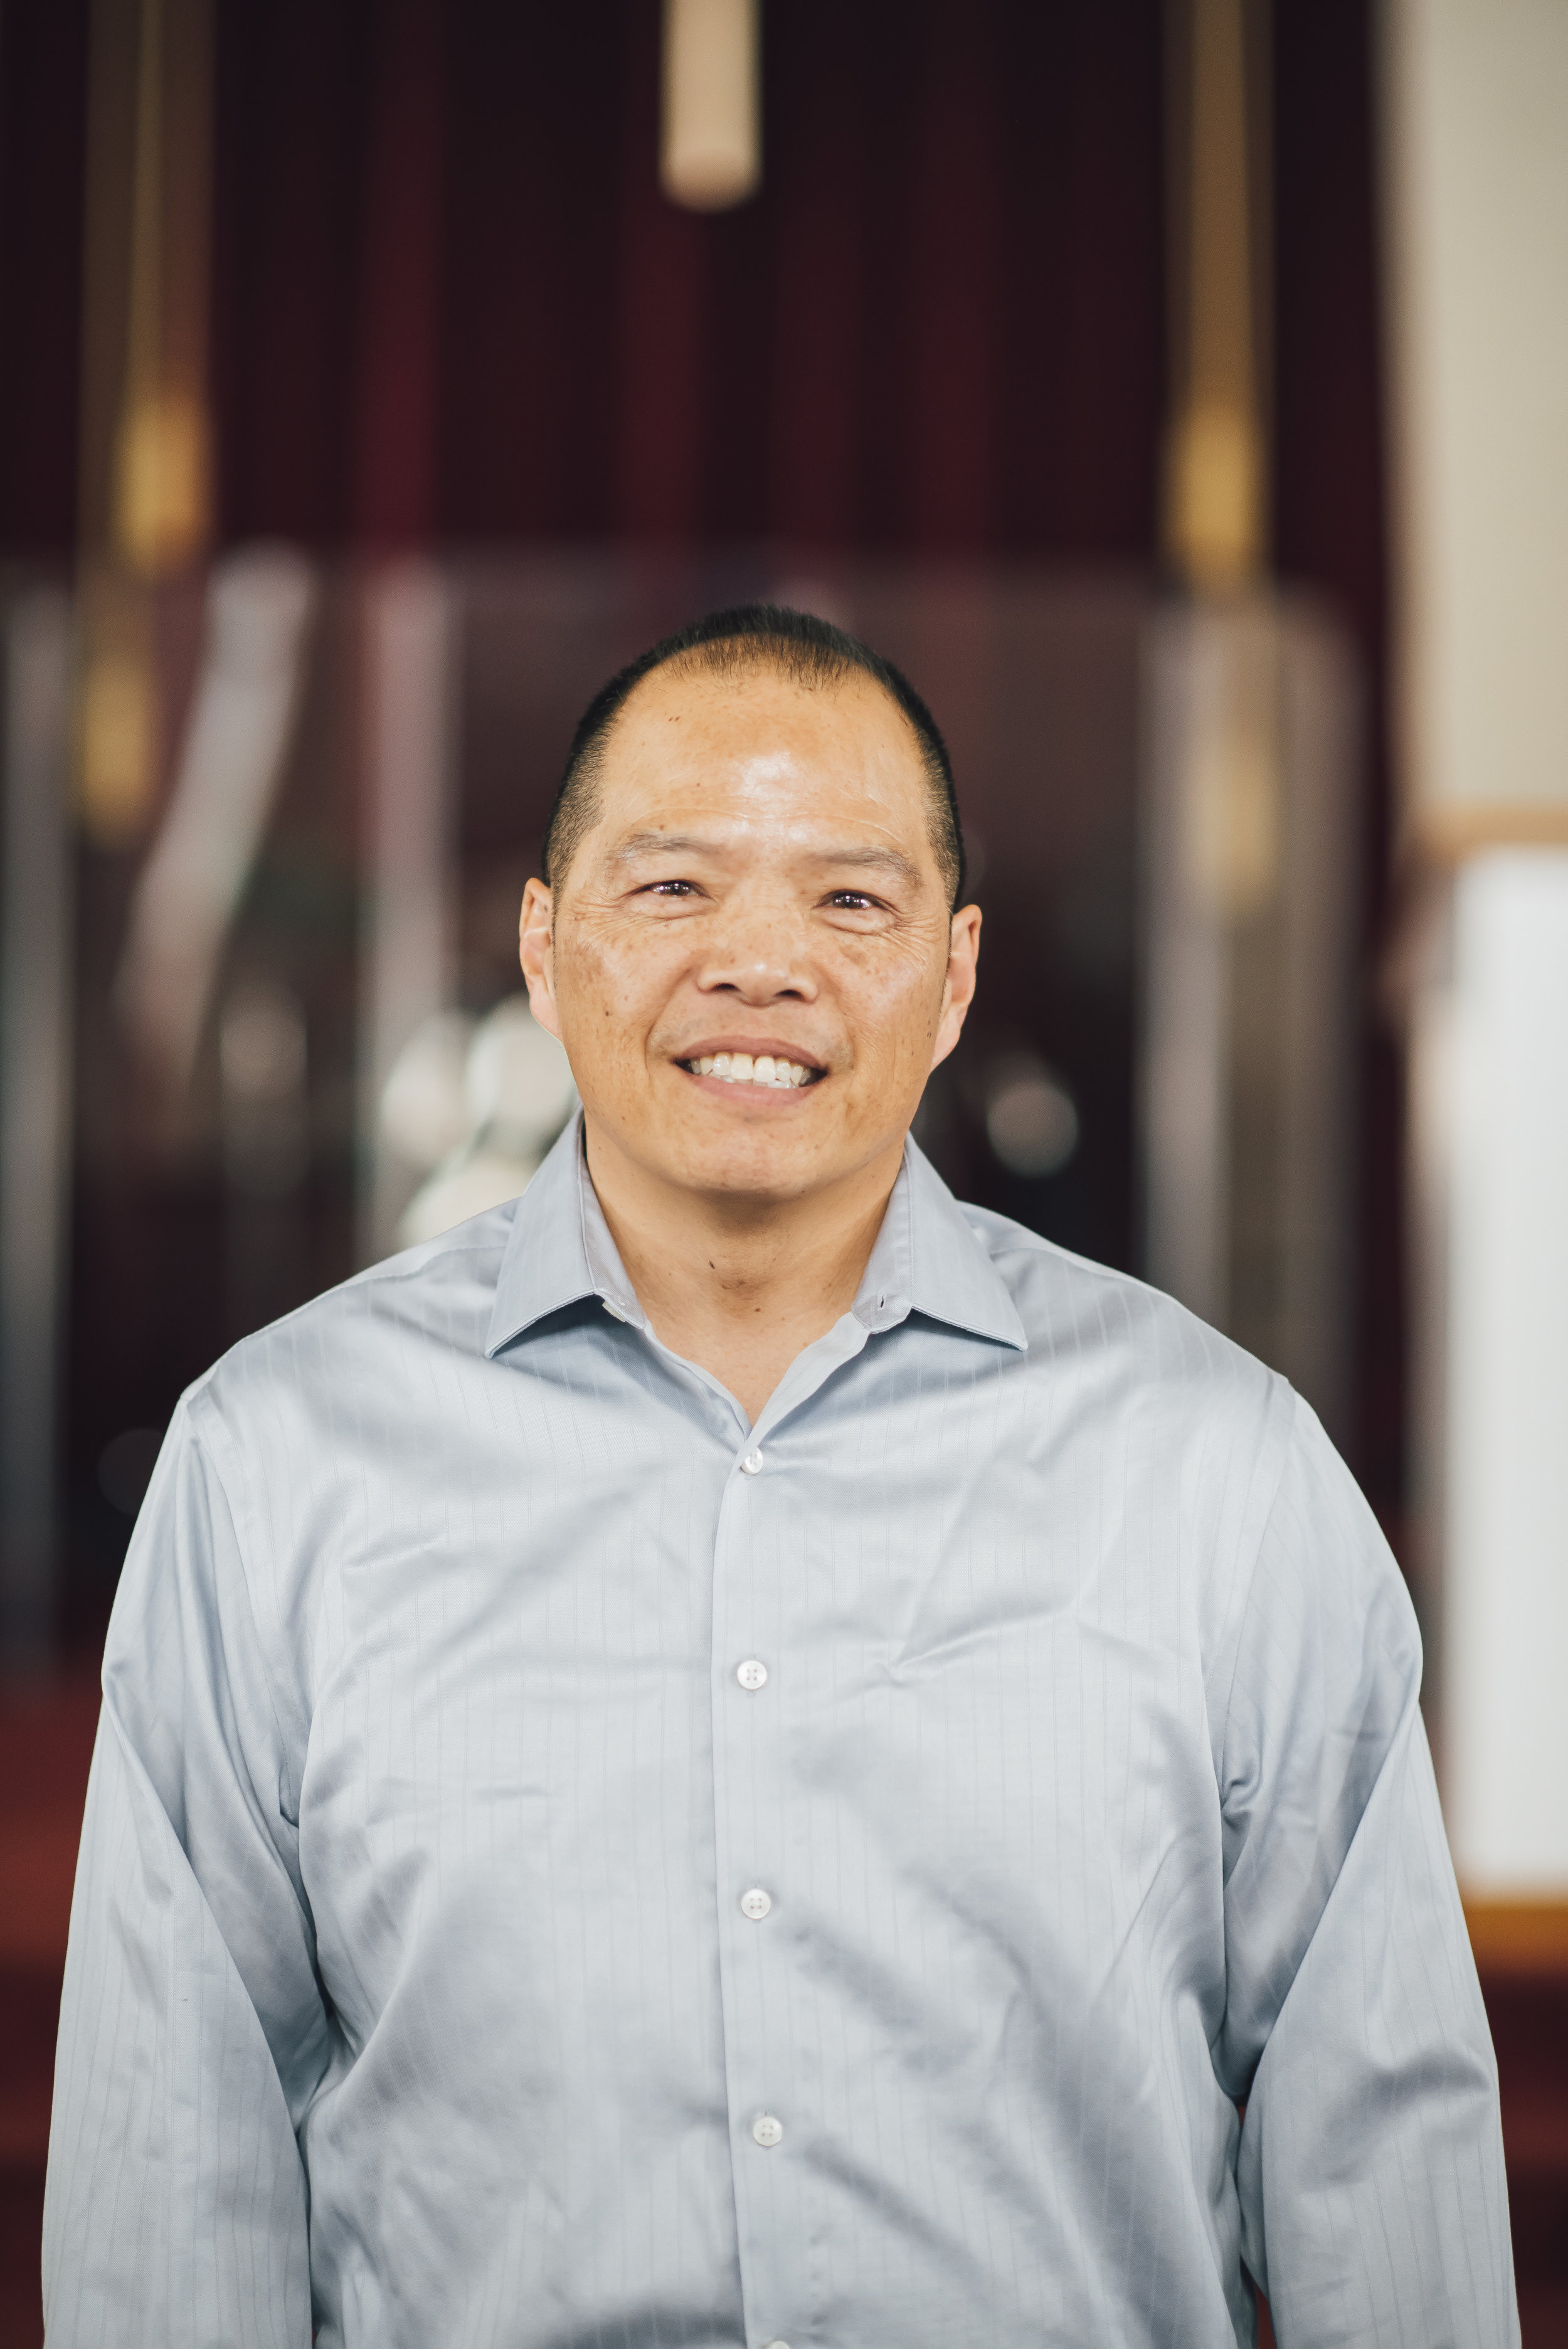 Clifton Wong - Clifton has been serving on the Board of Directors of Cornerstone Trinity Baptist Church since it's incorporation back in 2008. He holds the role of Treasurer for the church and handles various financial and accounting functions, in addition to coordinating the annual CPA review of the financial results. He has also served as a Board of Elder for the church from Oct 2014 to May 2018, when he decided to step down from his role of Elder in order to focus on the Board of Director tasks.He has more than 35 years of professional finance and accounting experience. He graduated from Golden Gate University with a BA in Accounting and received his CPA license (inactive).